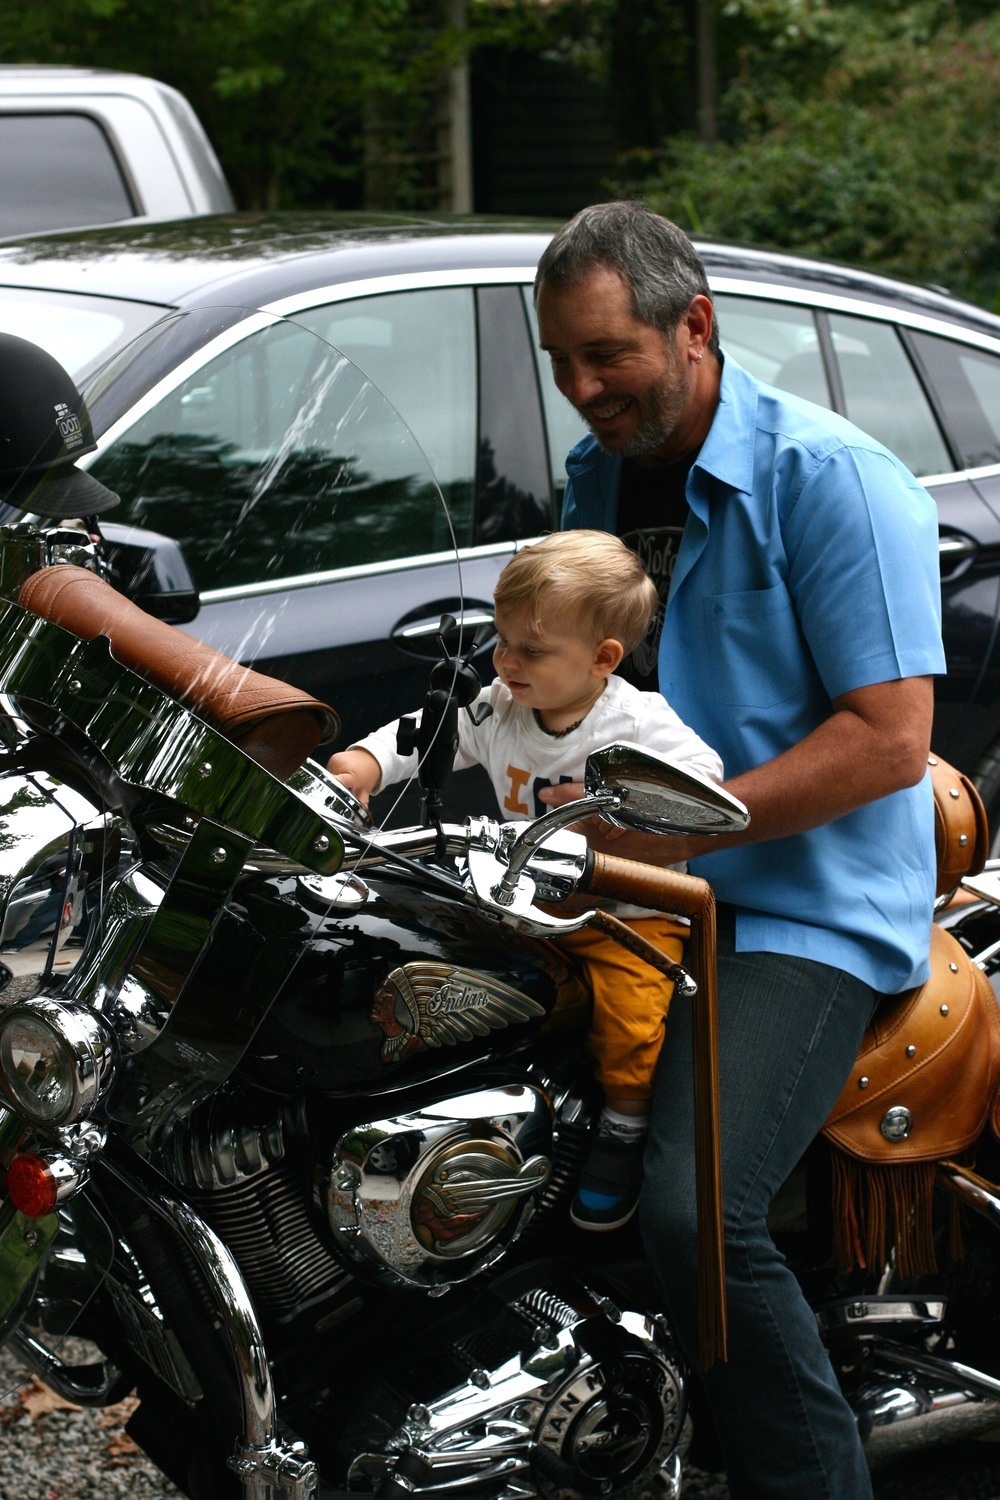 Everett LOVES my dad's Indian motorcycle. He makes the noises. And he always wants to sit on it. But when my dad fires the thing up, he cries.